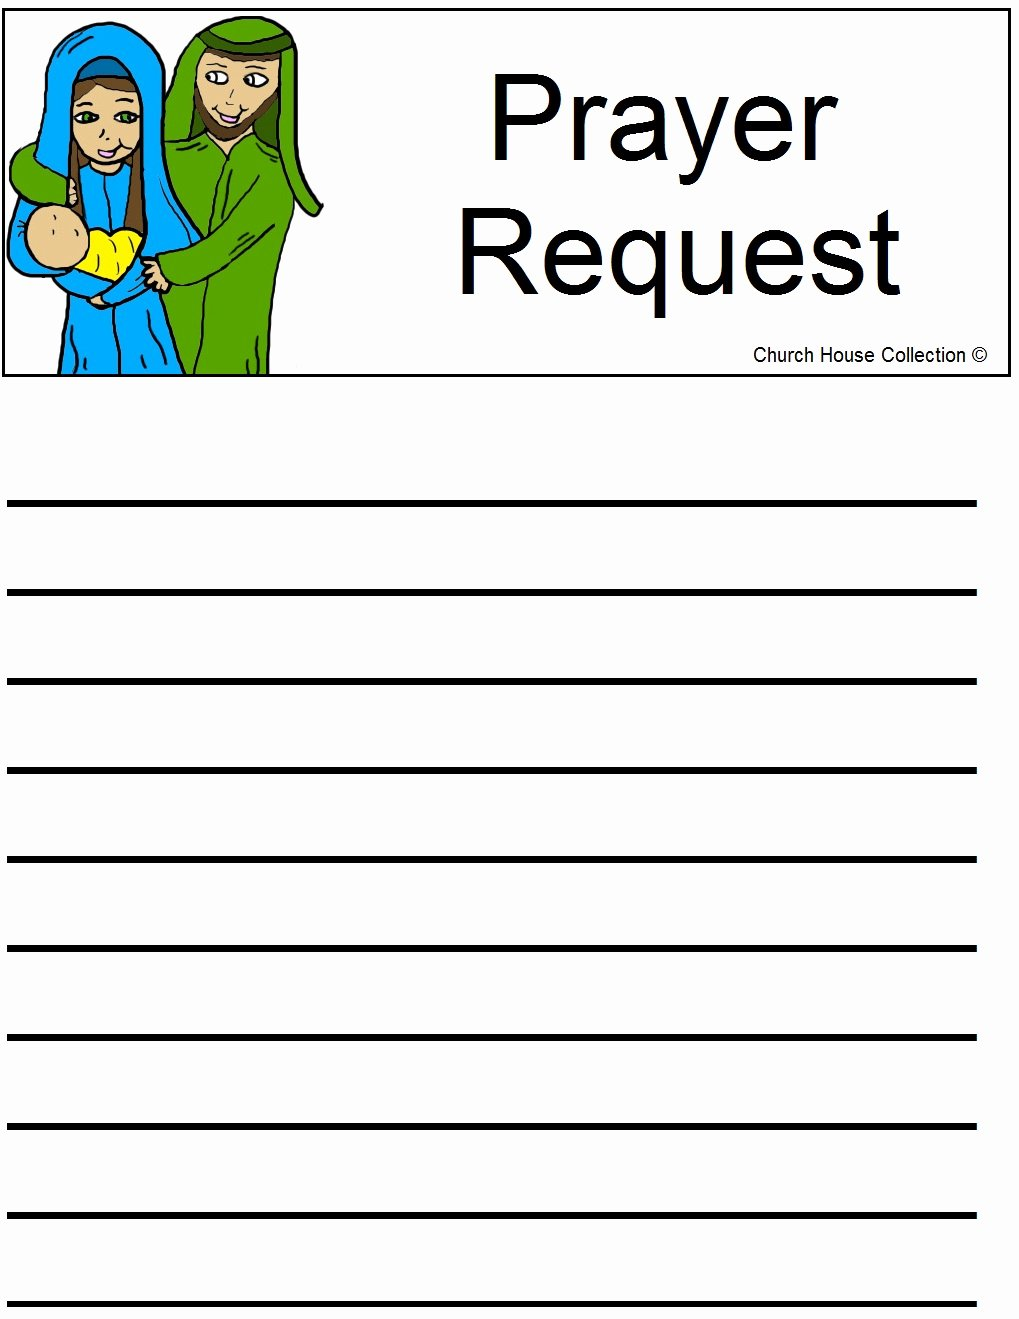 Prayer Request Card Template Best Of Church House Collection Blog Nativity Sunday School Lesson